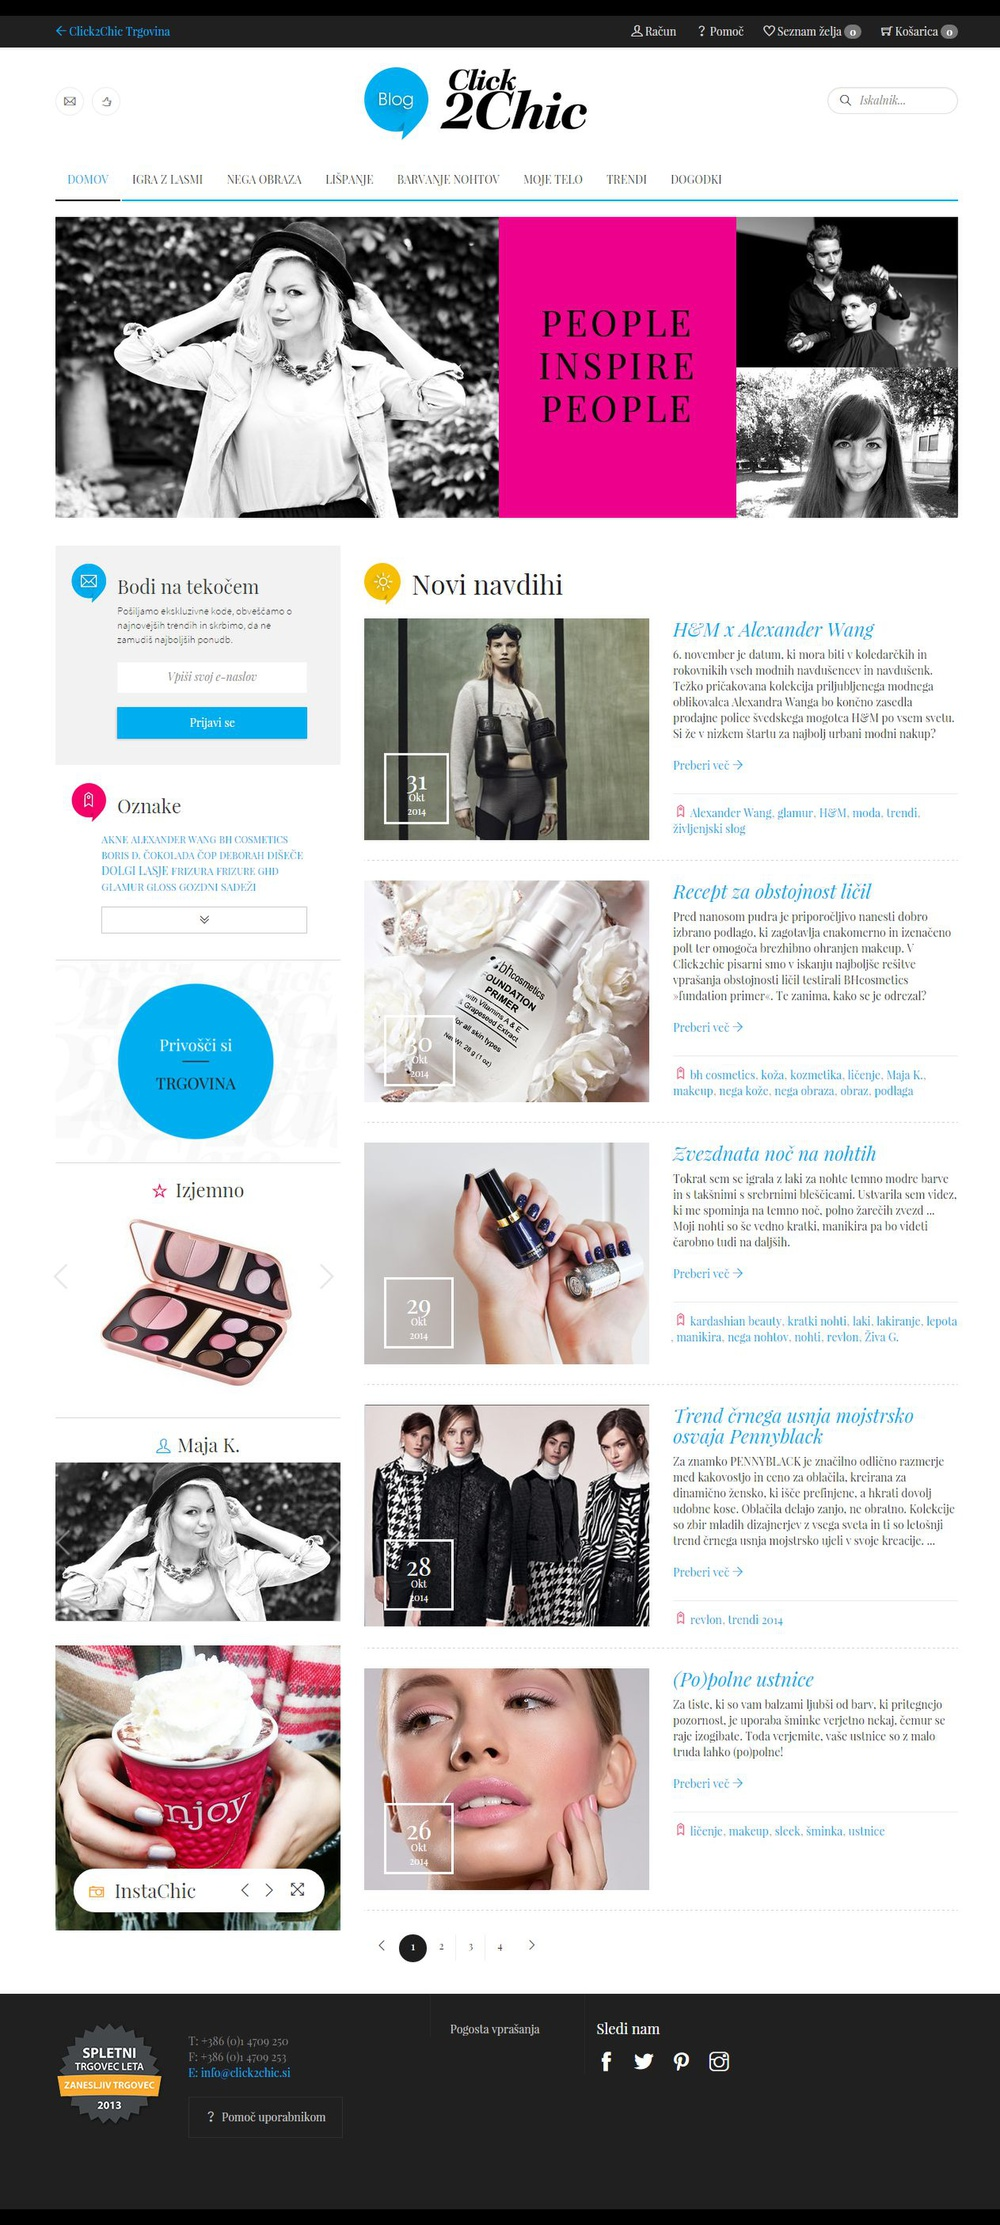 Blog Click2chic